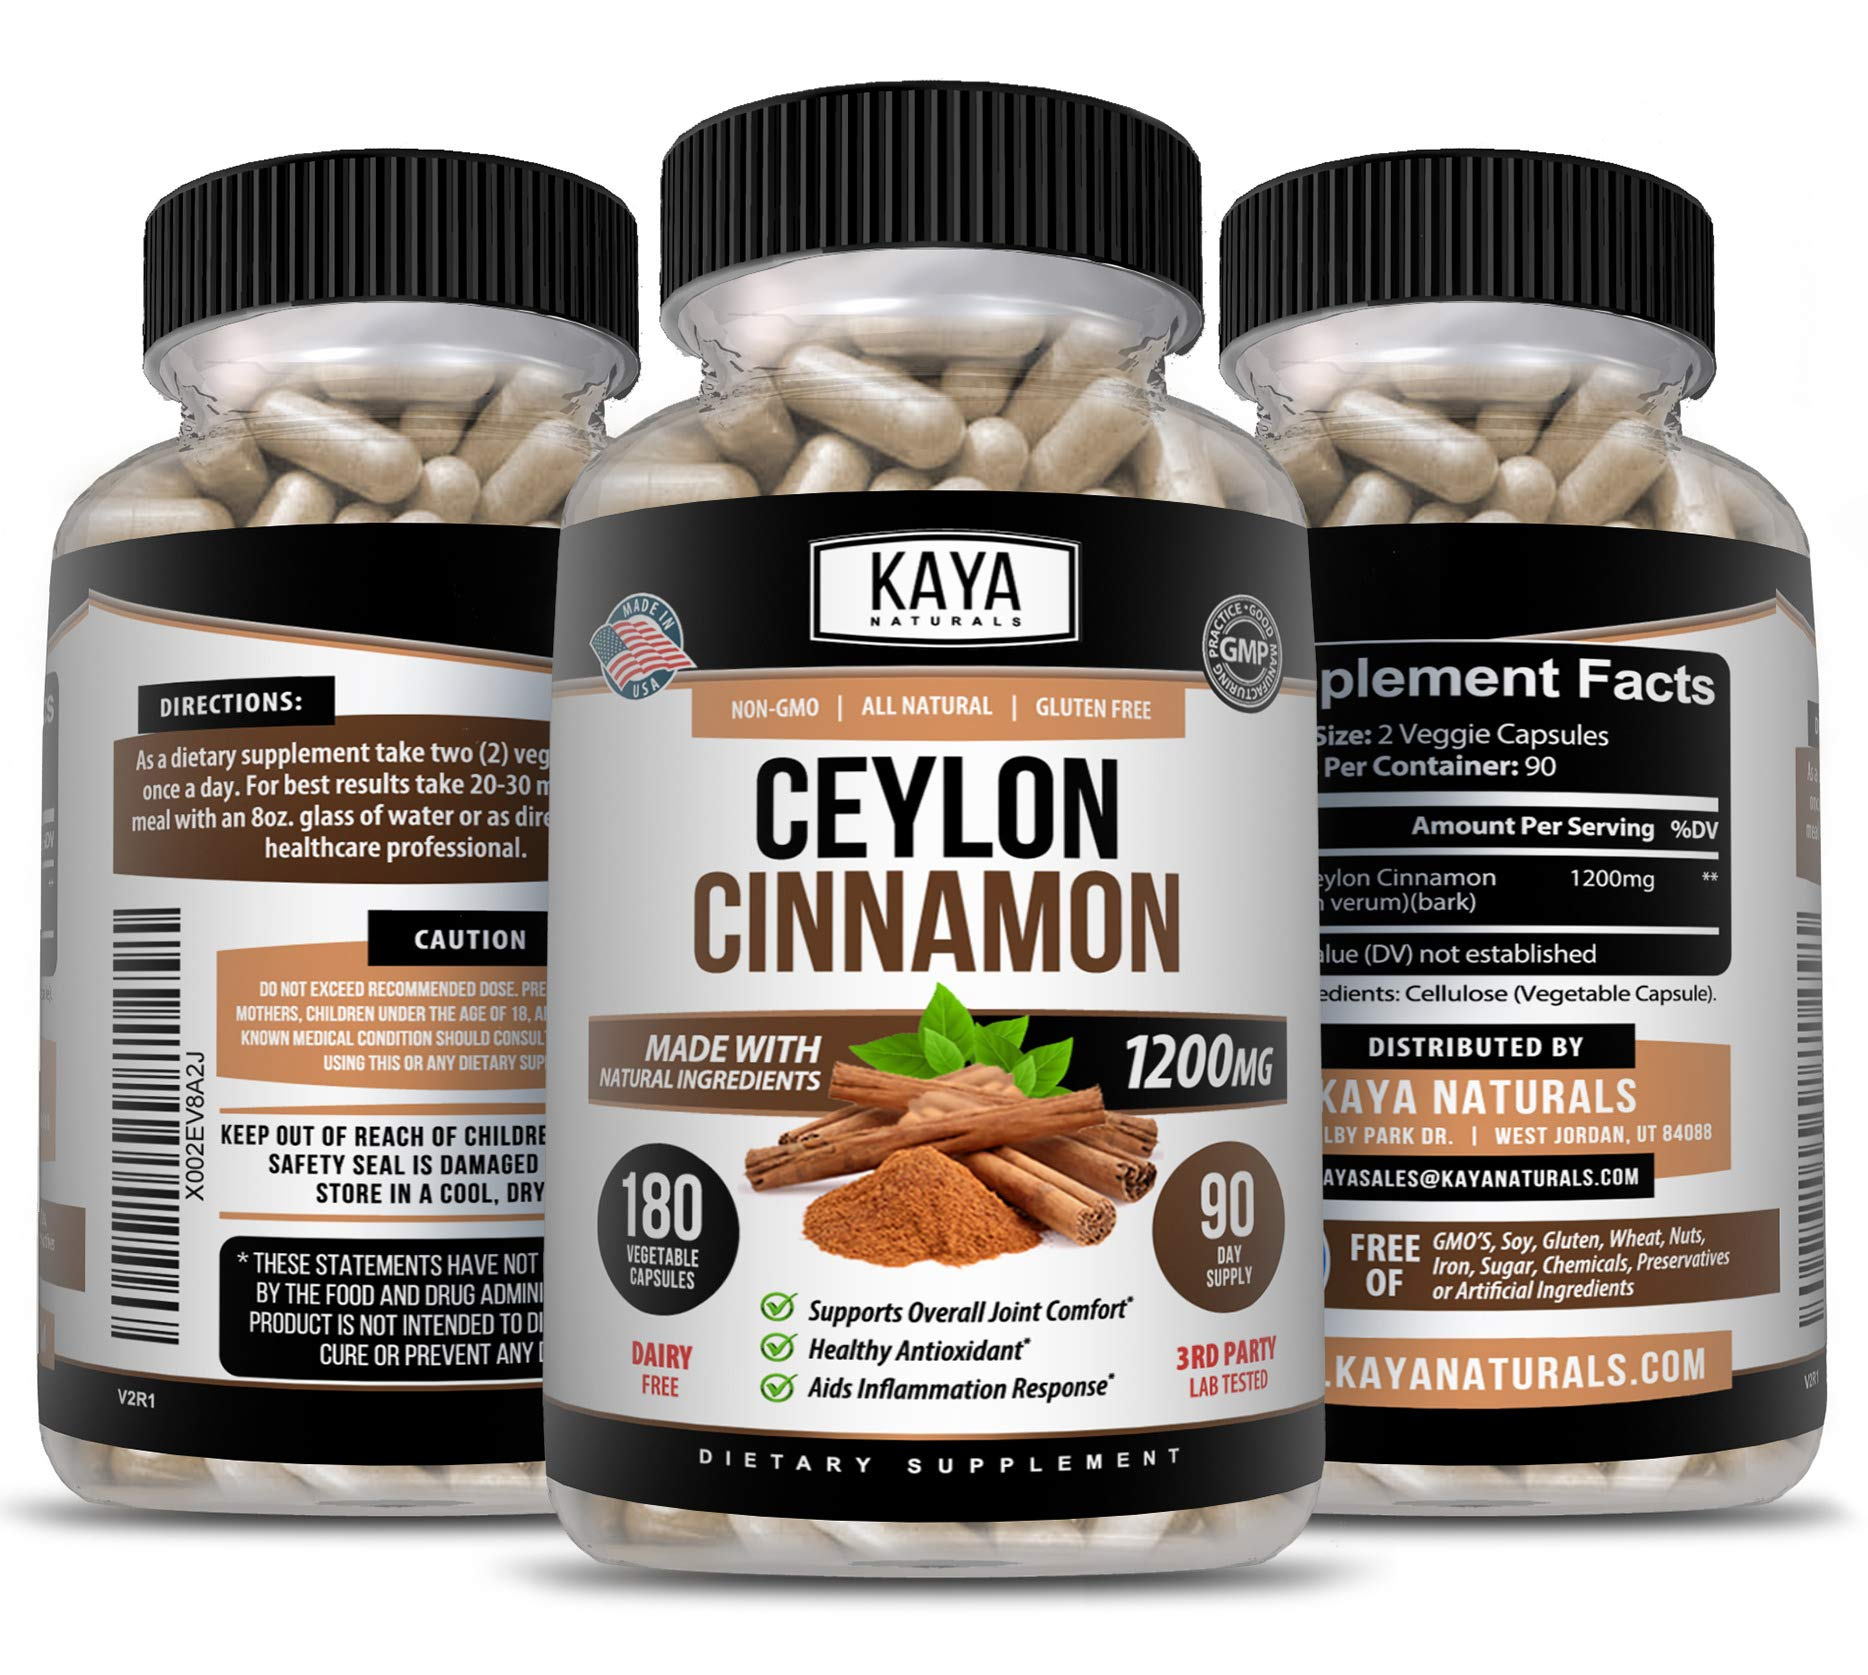 Kaya Naturals Organic Ceylon Cinnamon 1200mg per Serving, 180 Count Capsules for Healthy Blood Sugar Support, Joint Support, Anti-inflammatory & Antioxidant (180 Capsules)